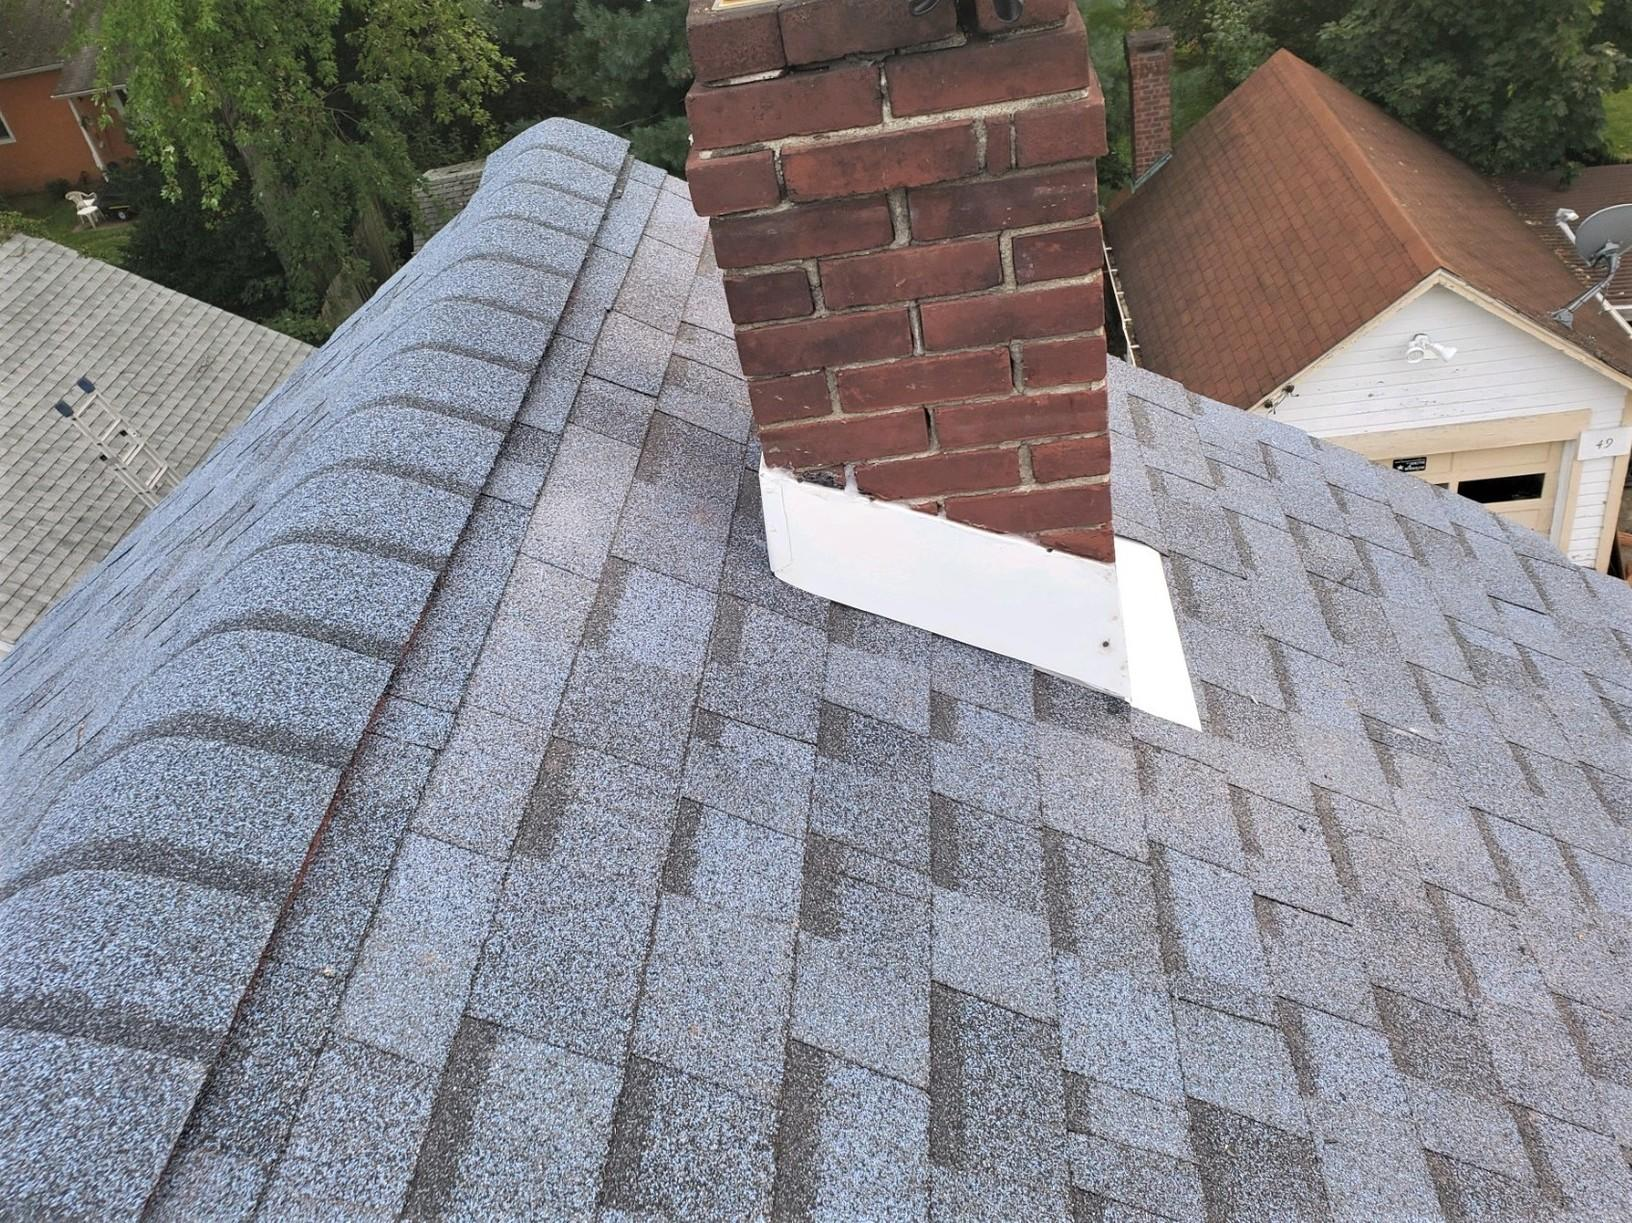 Roofing Replacement in Ulster Park